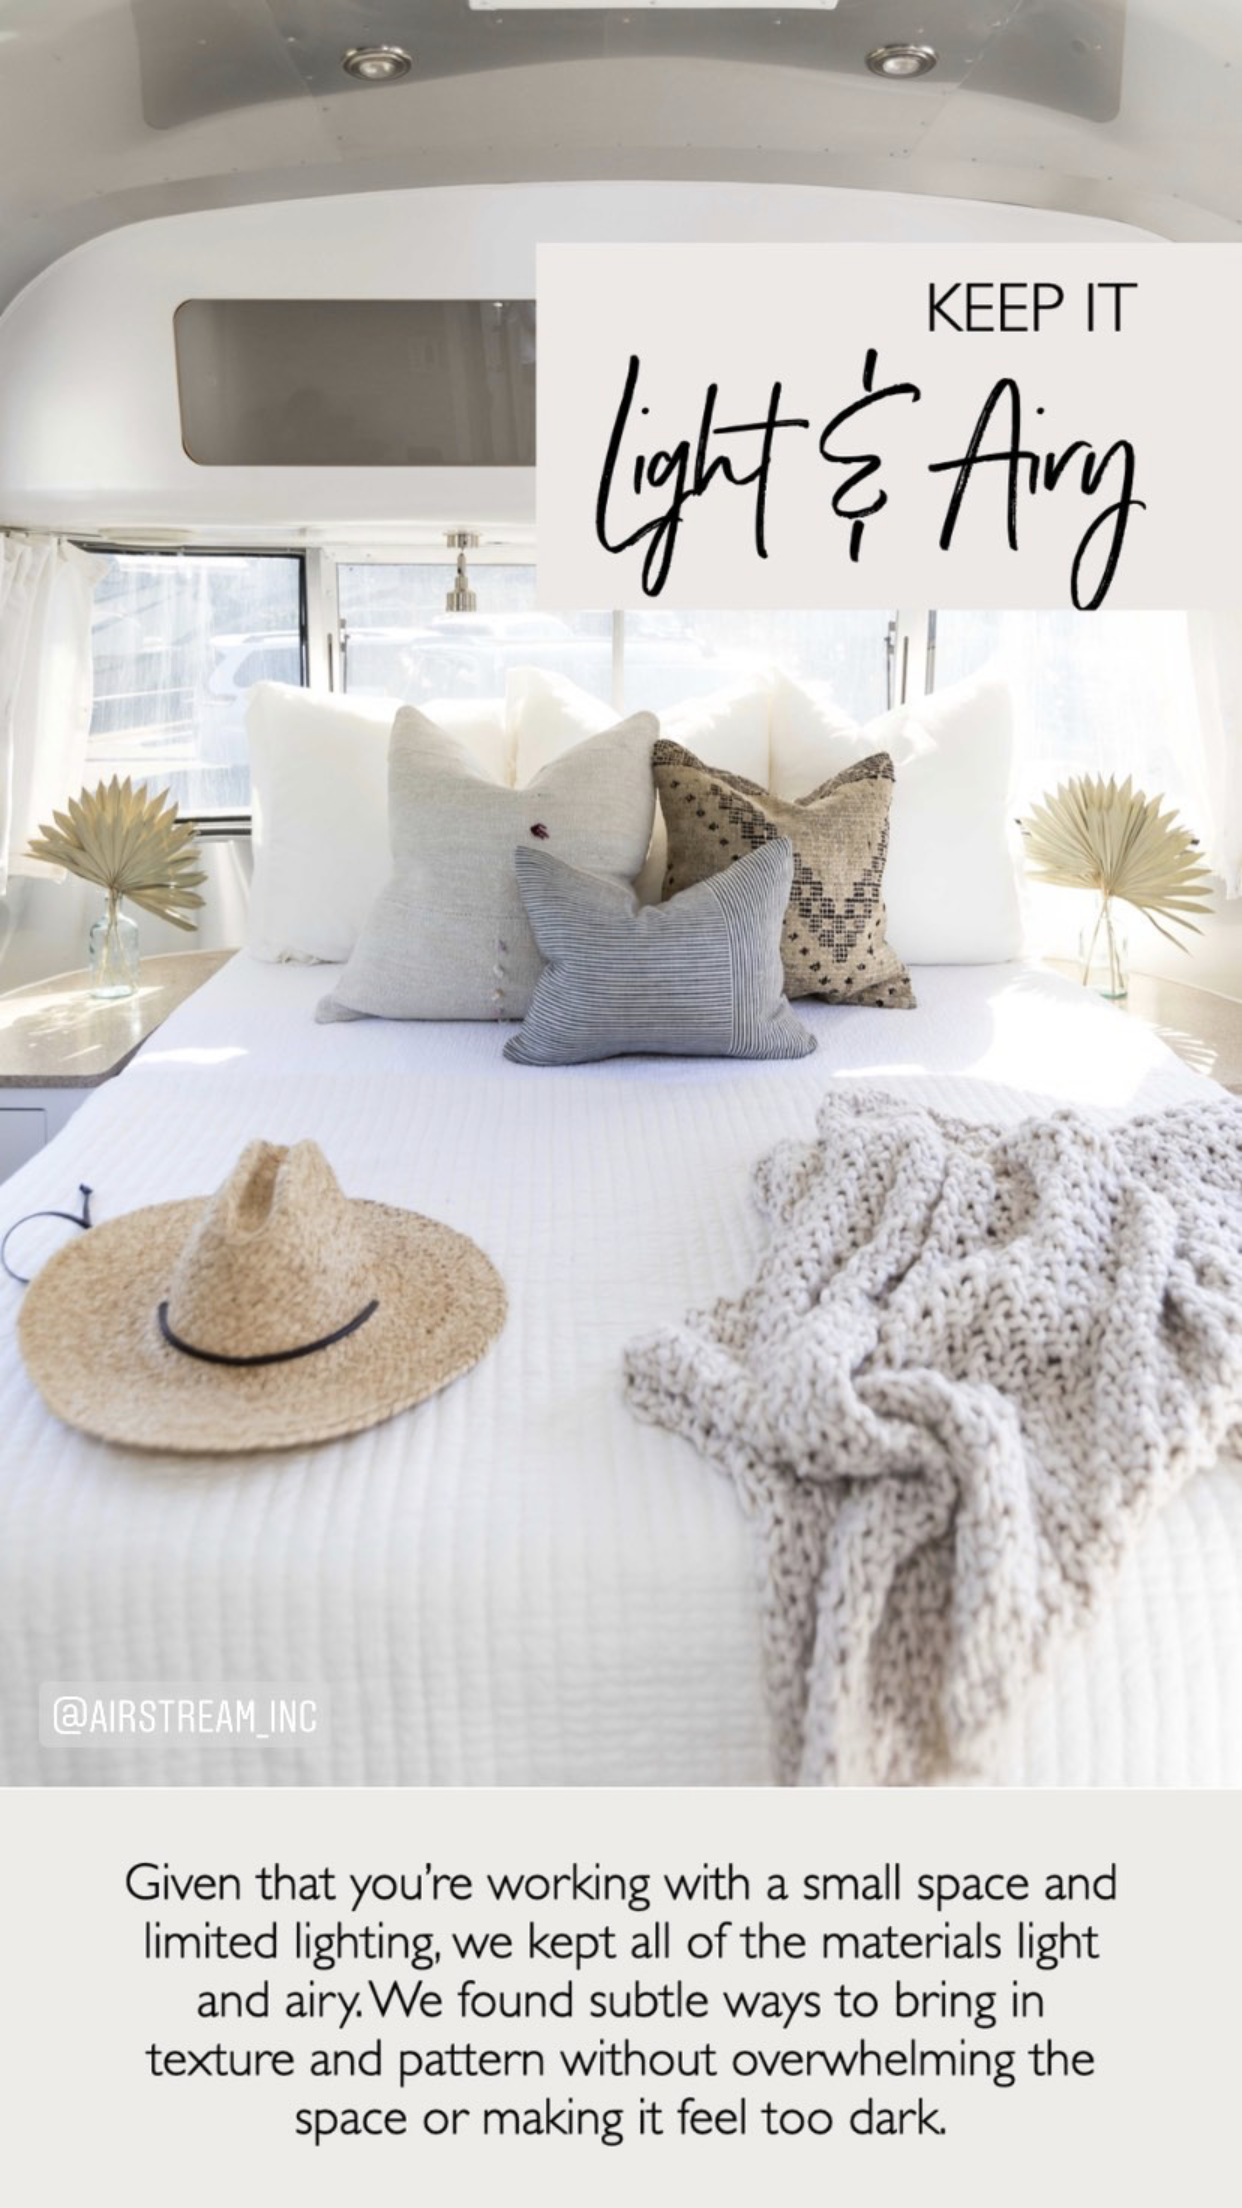 Airstream Styling | INTERIOR DESIGN TIPS AND TRICK | #DesignTips #InteriorDesign #InteriorDesignTips #Tips #DecorTips #DesignGuide #InteriorDesignGuide #HomeDecor #AirstreamStyling